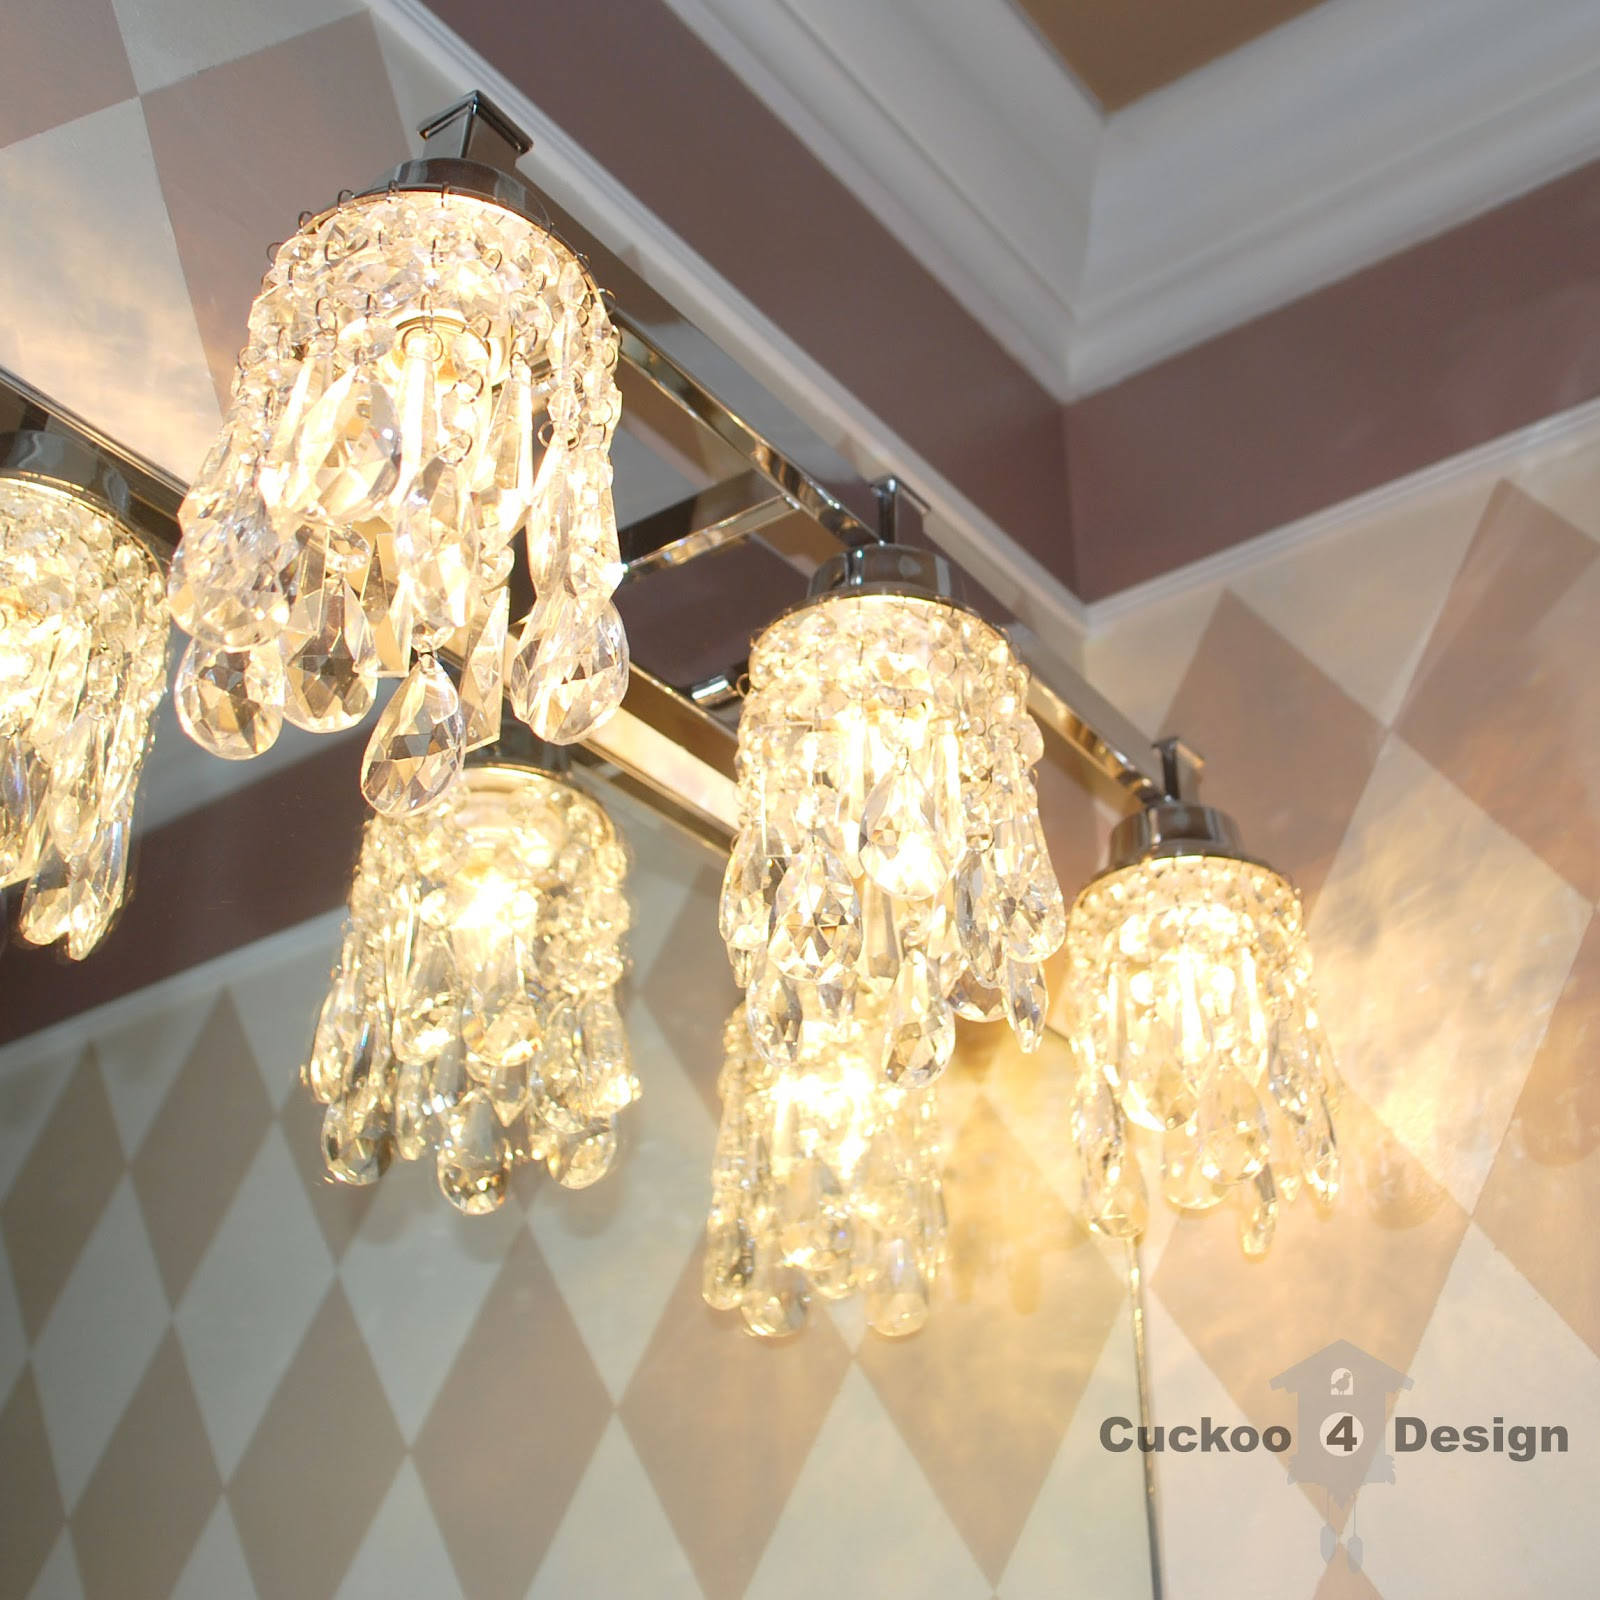 shades for bathroom vanity lights. DIY crystal lamp shades for vanity fixture  Cuckoo4Design